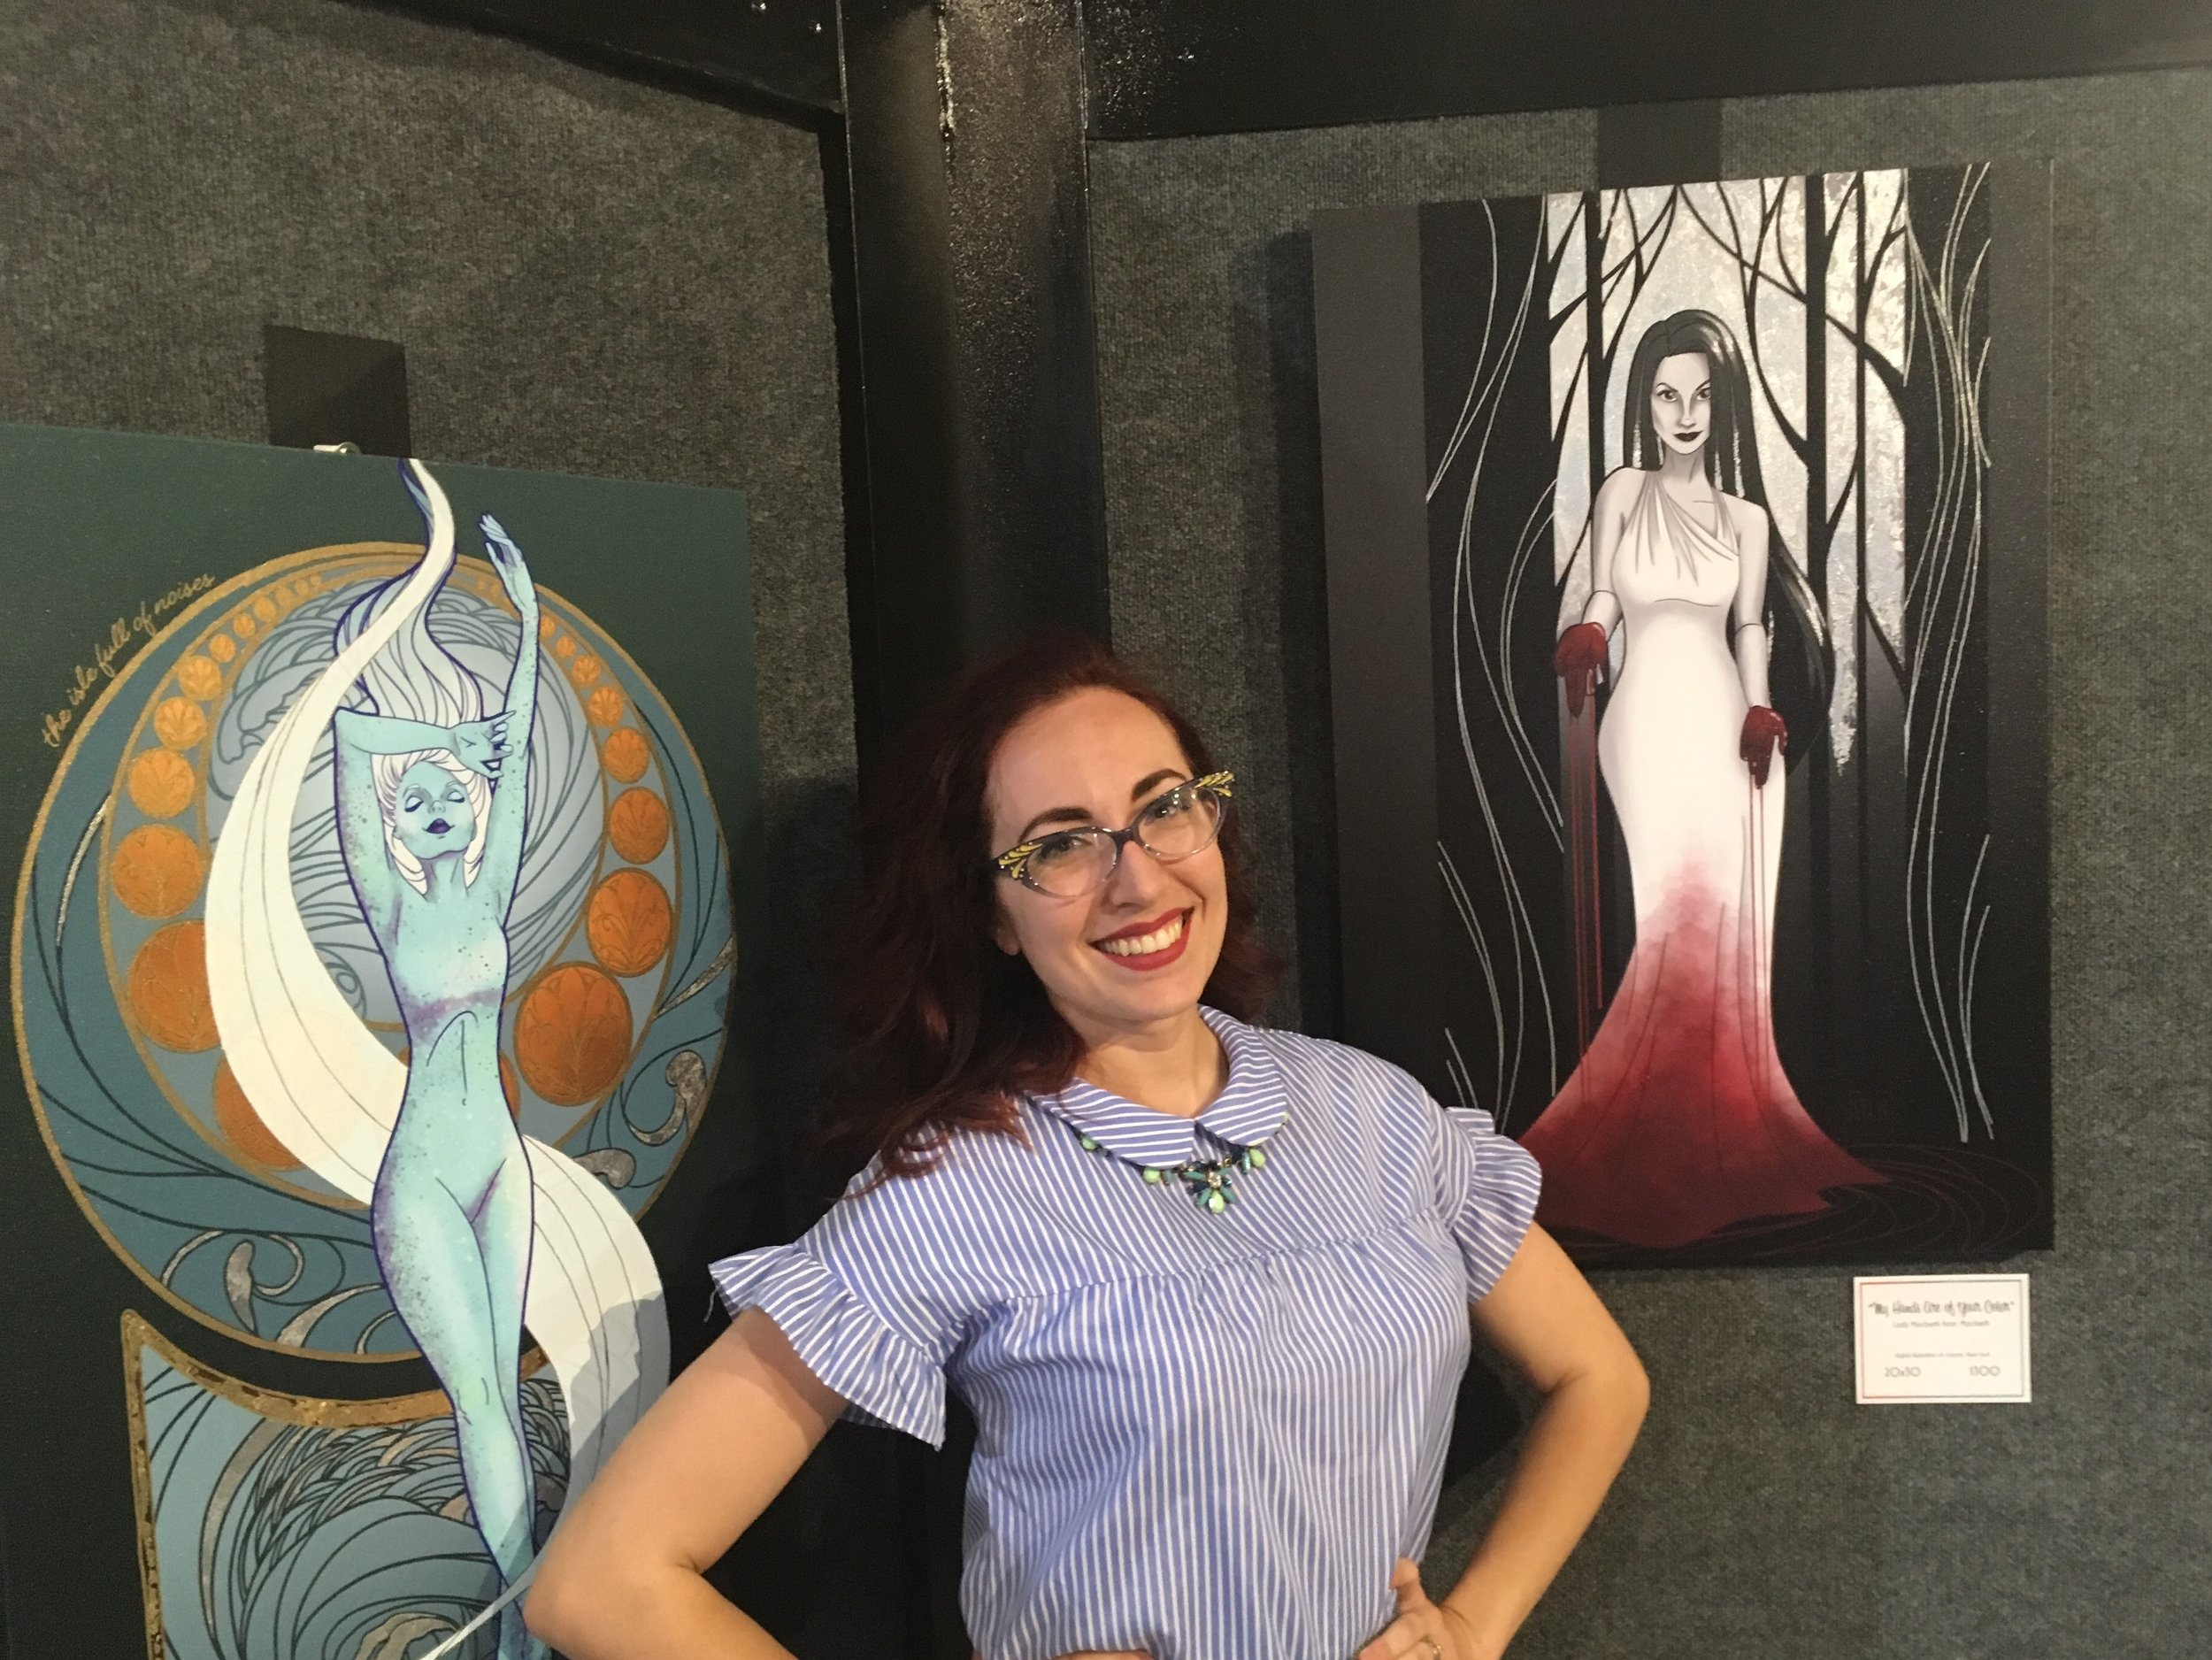 Cedar City artist Kaitlin Mills stands amid her renditions of Shakespearean women (Ariel on the left, Lady Macbeth on the right) at her solo exhibition at the Frontier Homestead State Park museum. Mills is also an actor, teaches stage makeup, does freelance graphic design and is studying art administration — symbolic of the do-it-yourself attitude in Cedar City's artistic community. (Photo by Sean P. Means.)